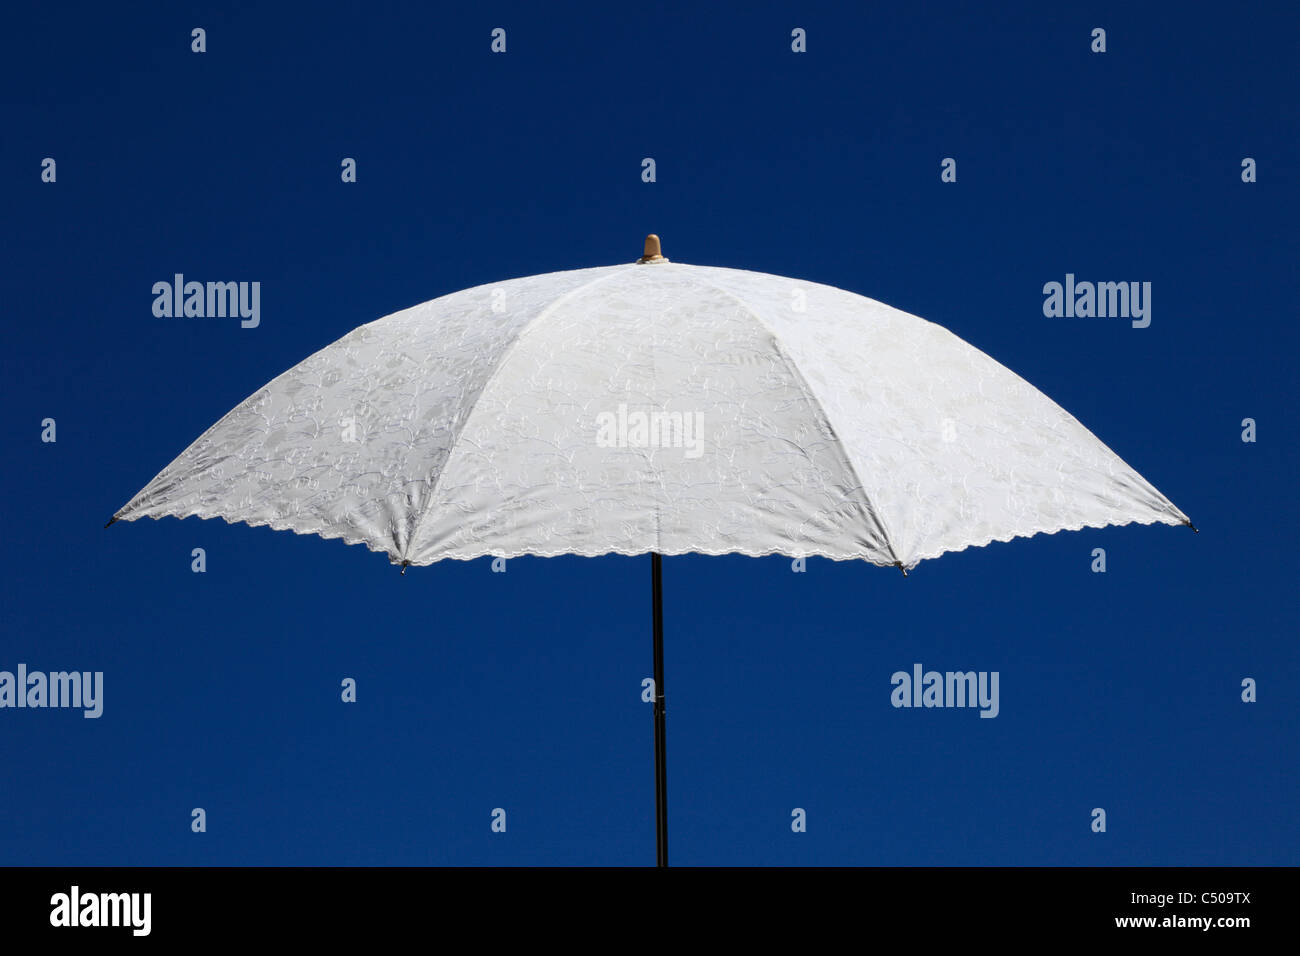 Bache Parasol Protection Against The Sun Stock Photos Protection Against The